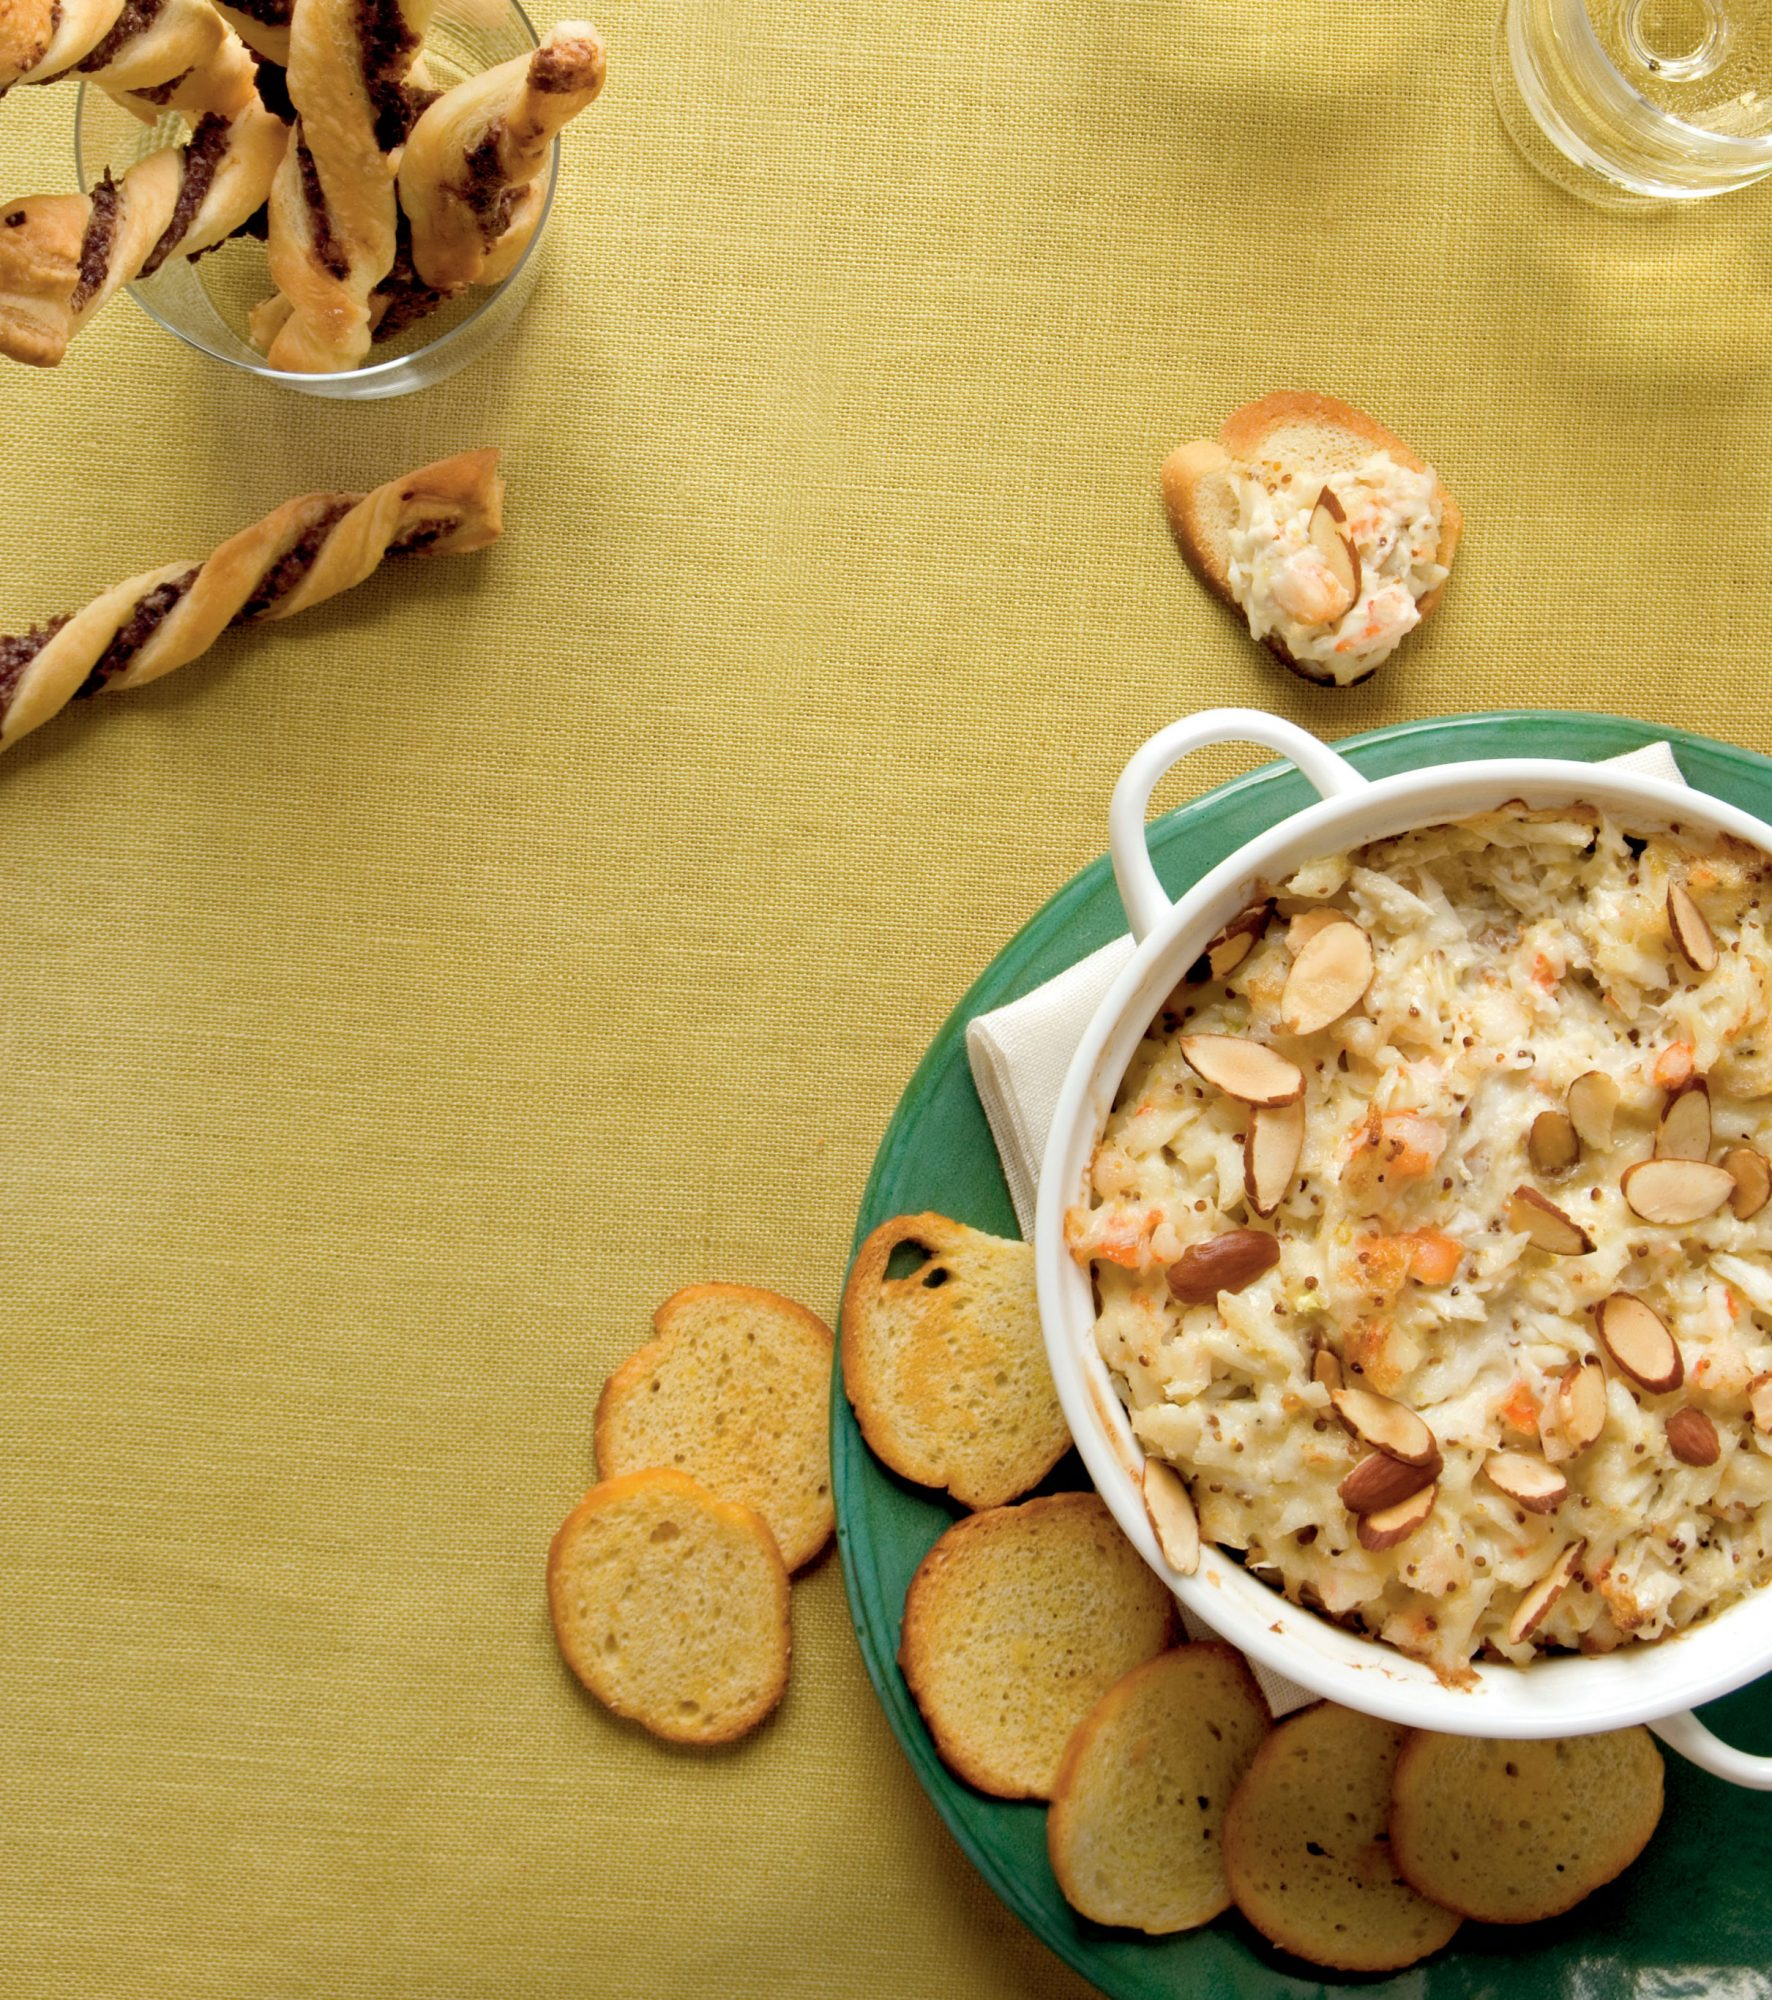 Hot Crab and Shrimp Dip Kris Wetherbee